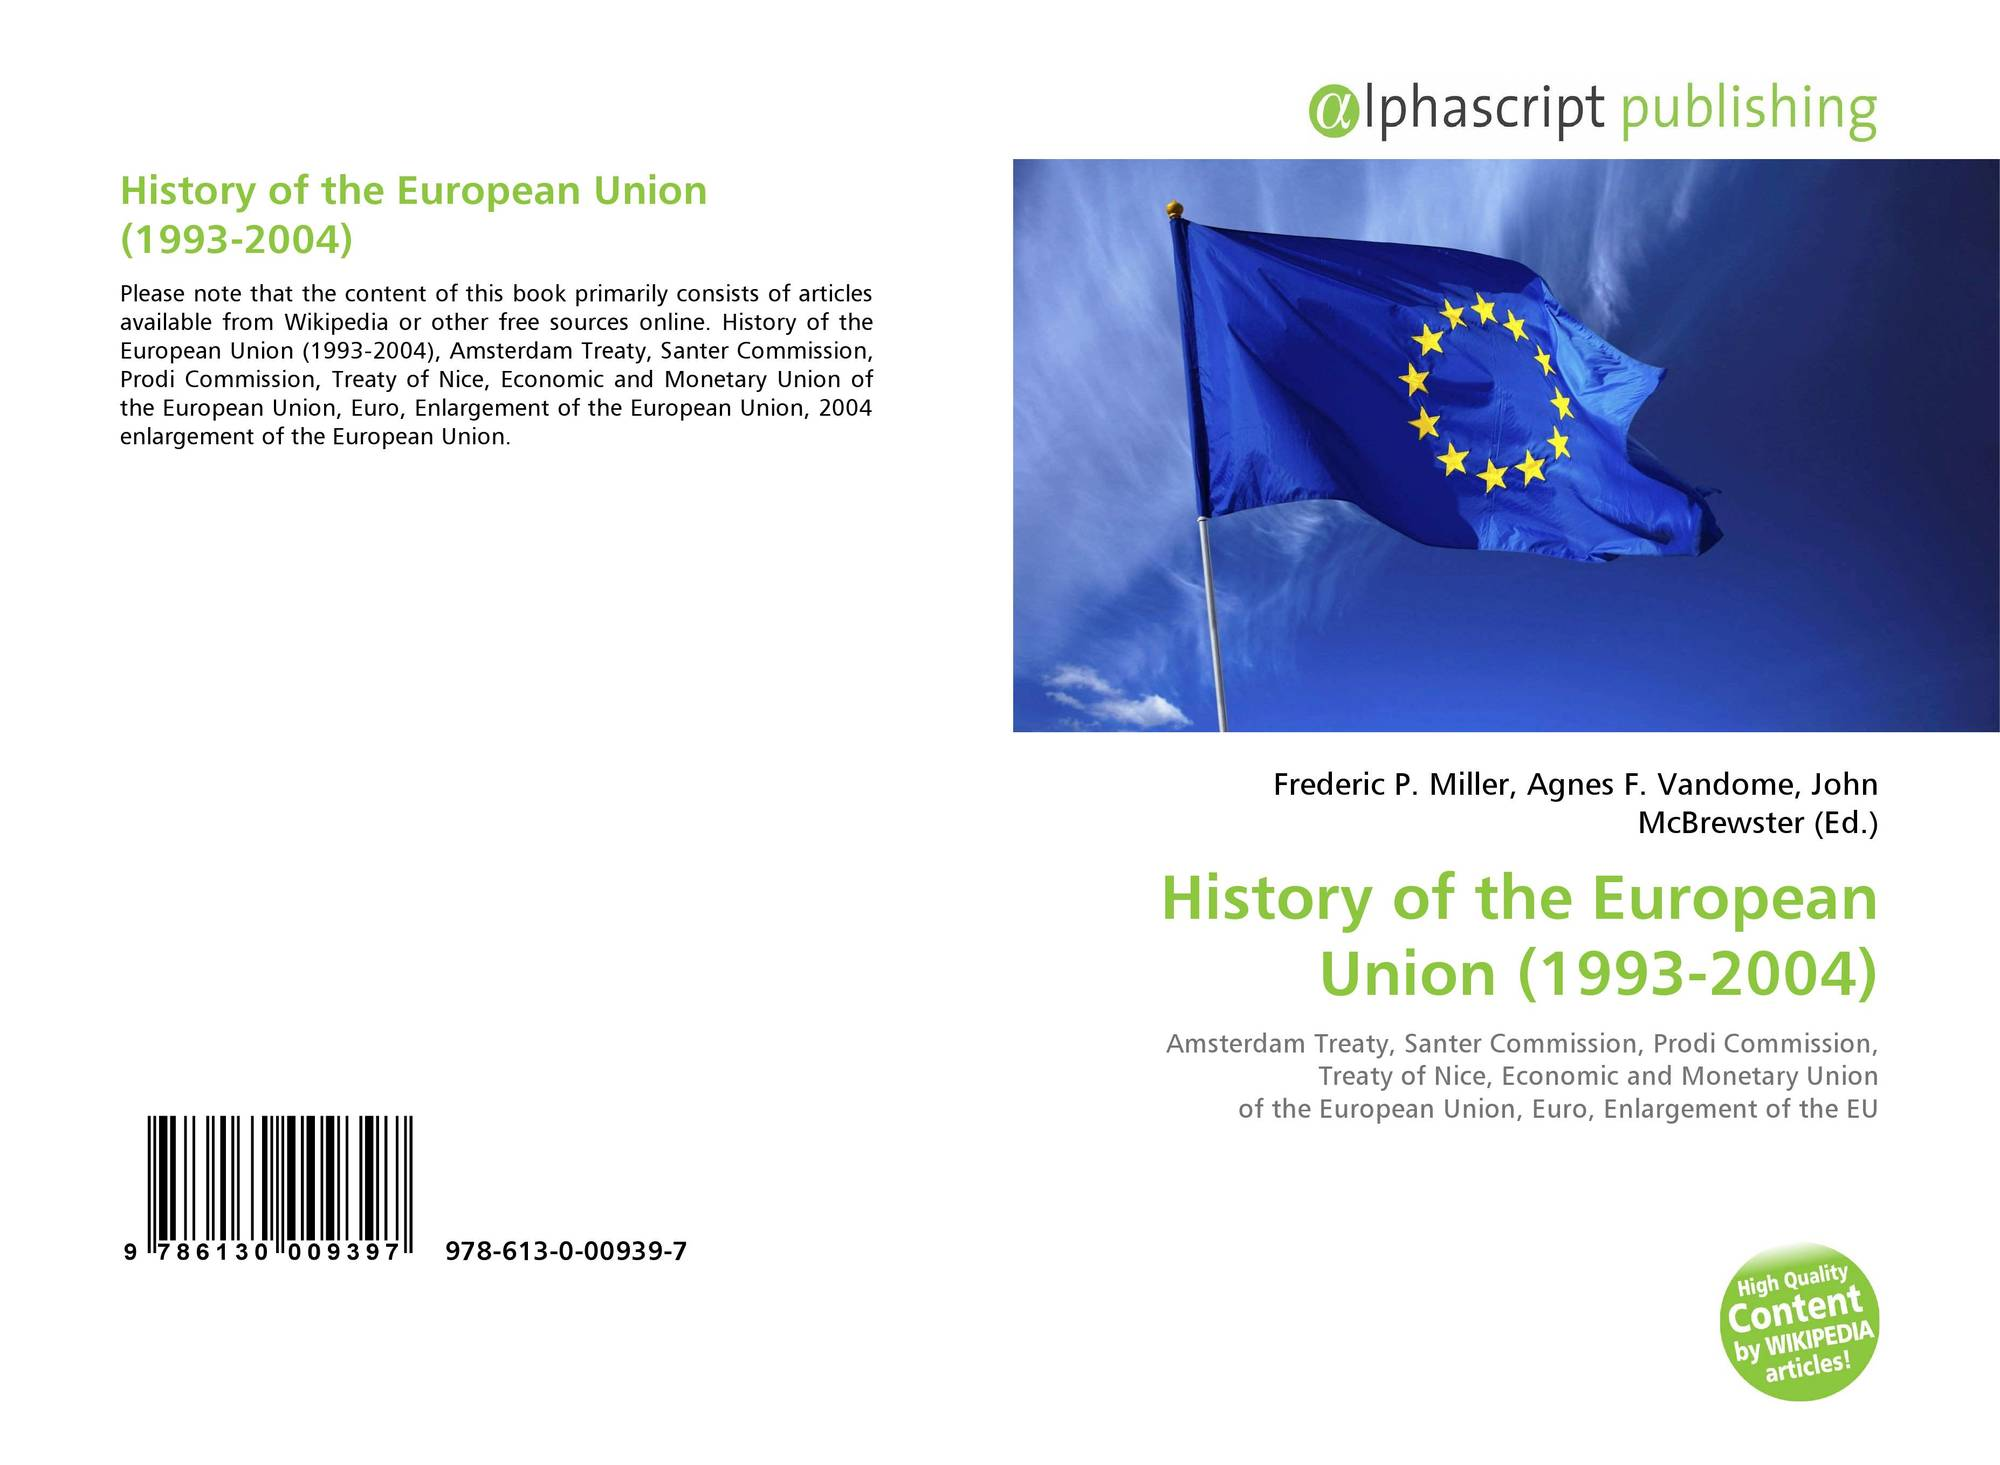 the history of the european union History of europe history of the euro history of enlargement (1995 - 2004 - 2007) list of presidents with a wave of new enlargements on the way, the maastricht treaty was signed on 7 february 1992 which established the european union when it came into force the following year.